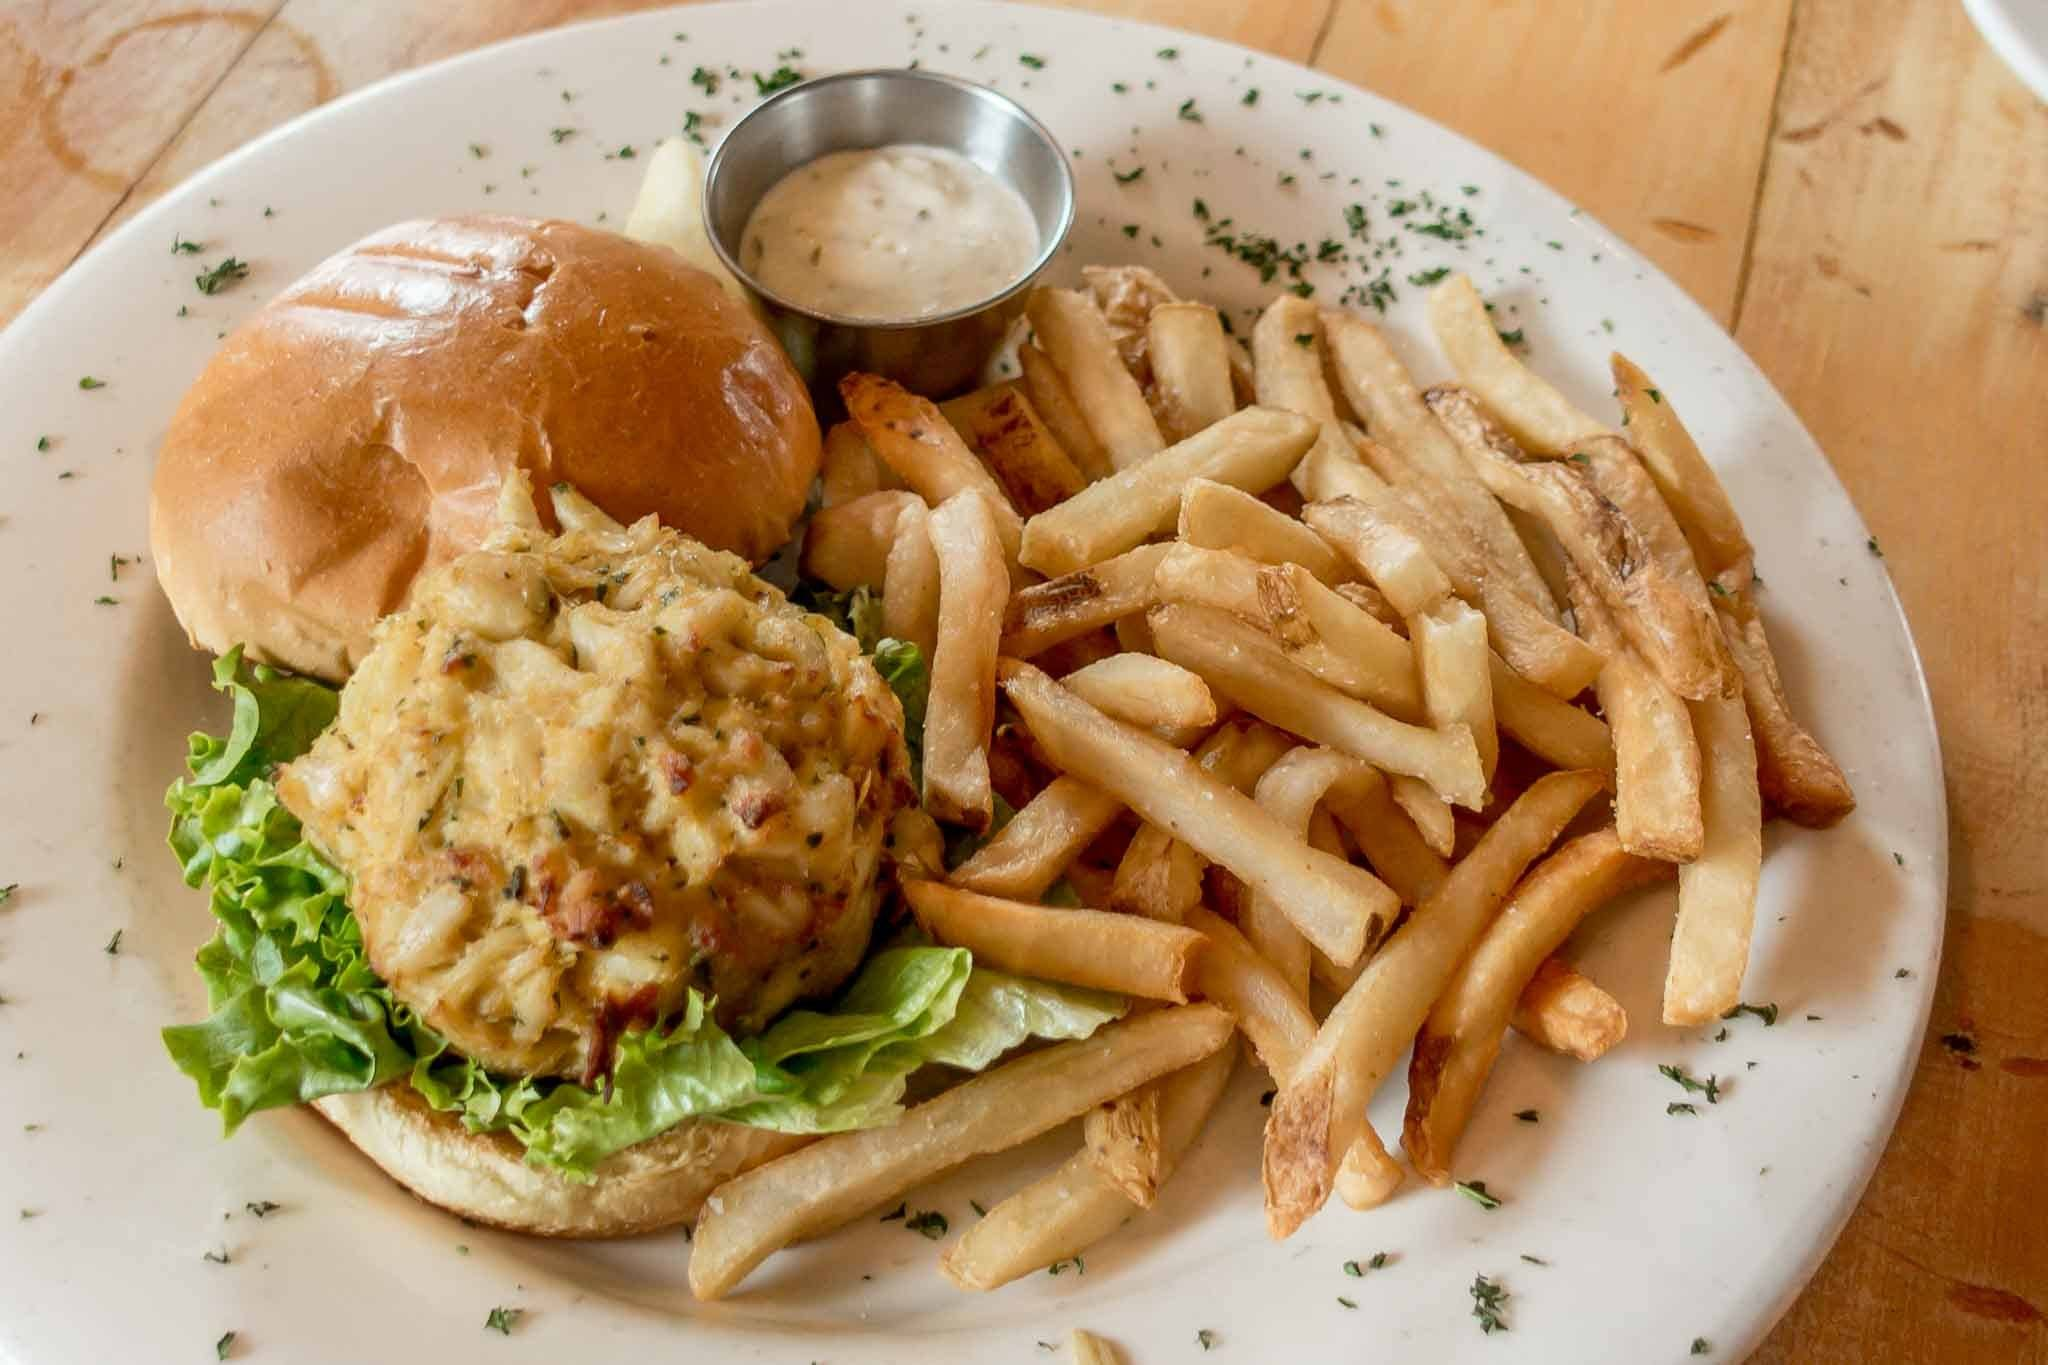 Crabcake sandwich and French fries on a plate